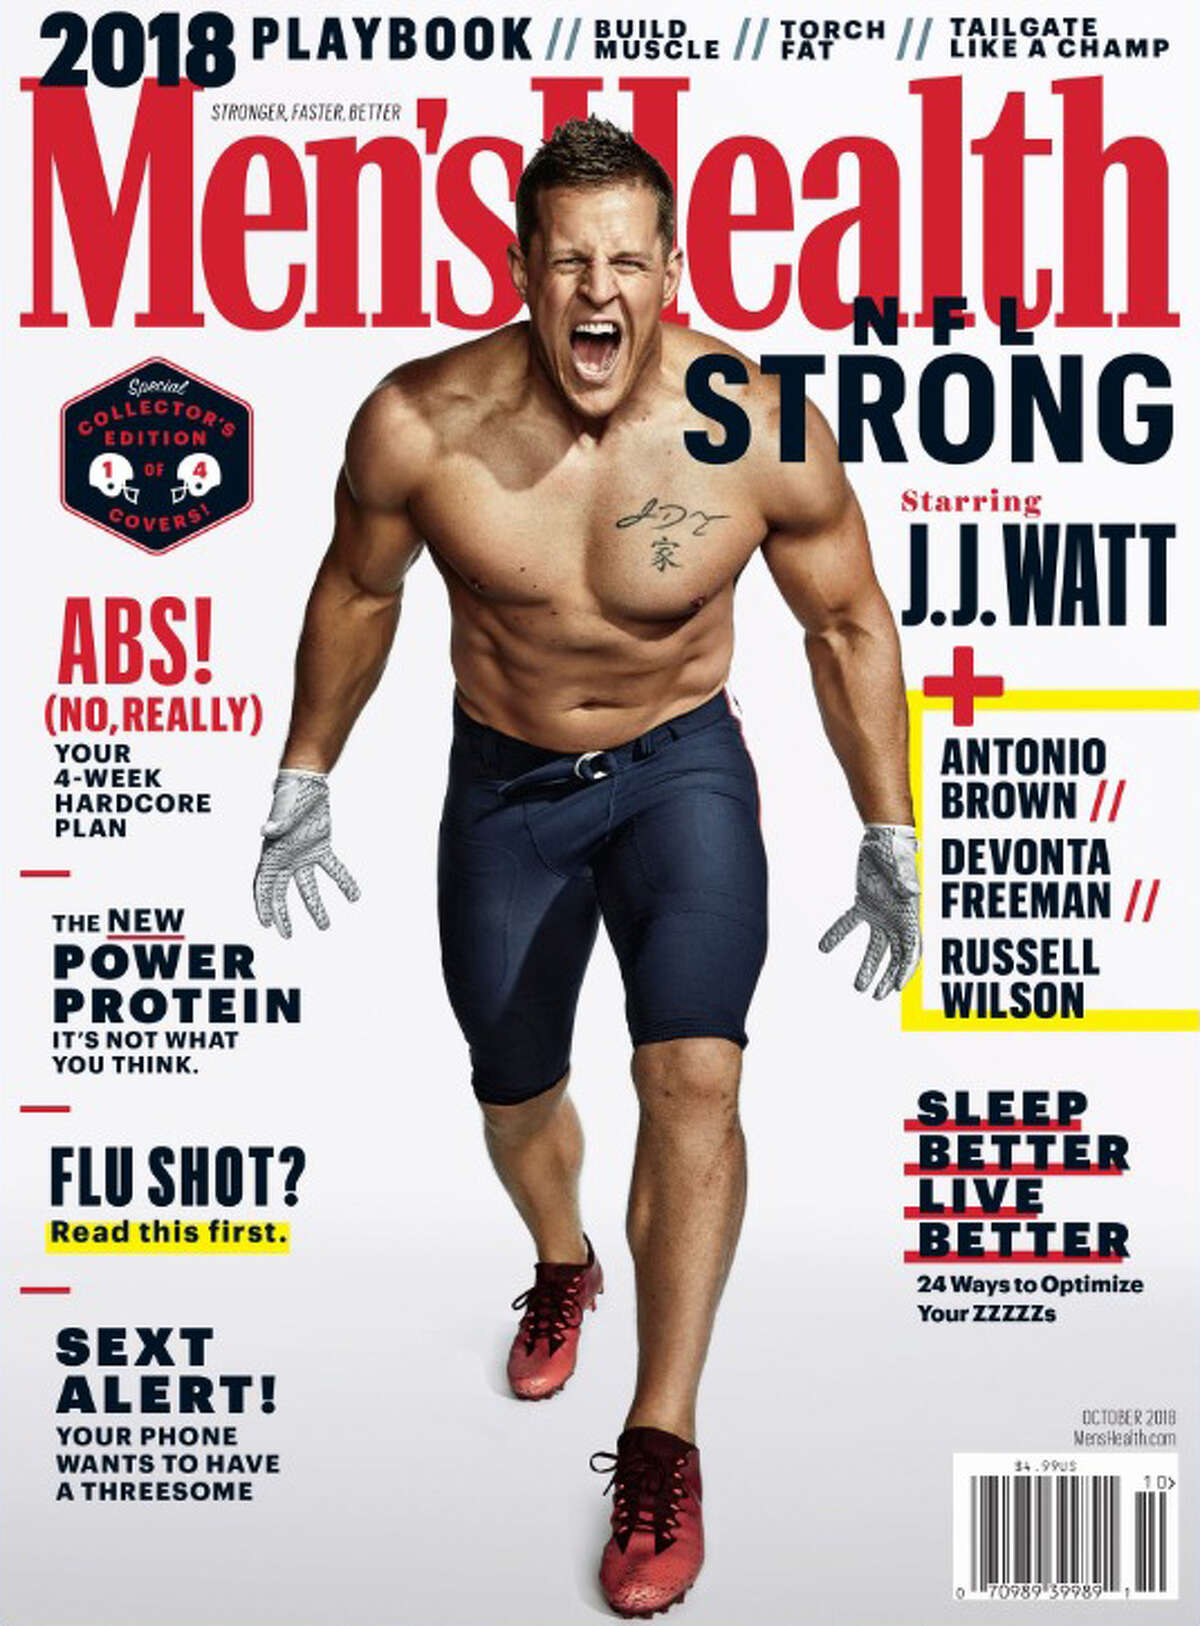 PHOTOS: A look at the Men's Health regional covers as well as other times J.J. Watt has been on magazine covers The Houston Texans' J.J. Watt appears on the cover of the October 2018 Men's Health issue. Take a look at the other Men's Health covers as well as other times J.J. Watt has been on the cover of magazines ...